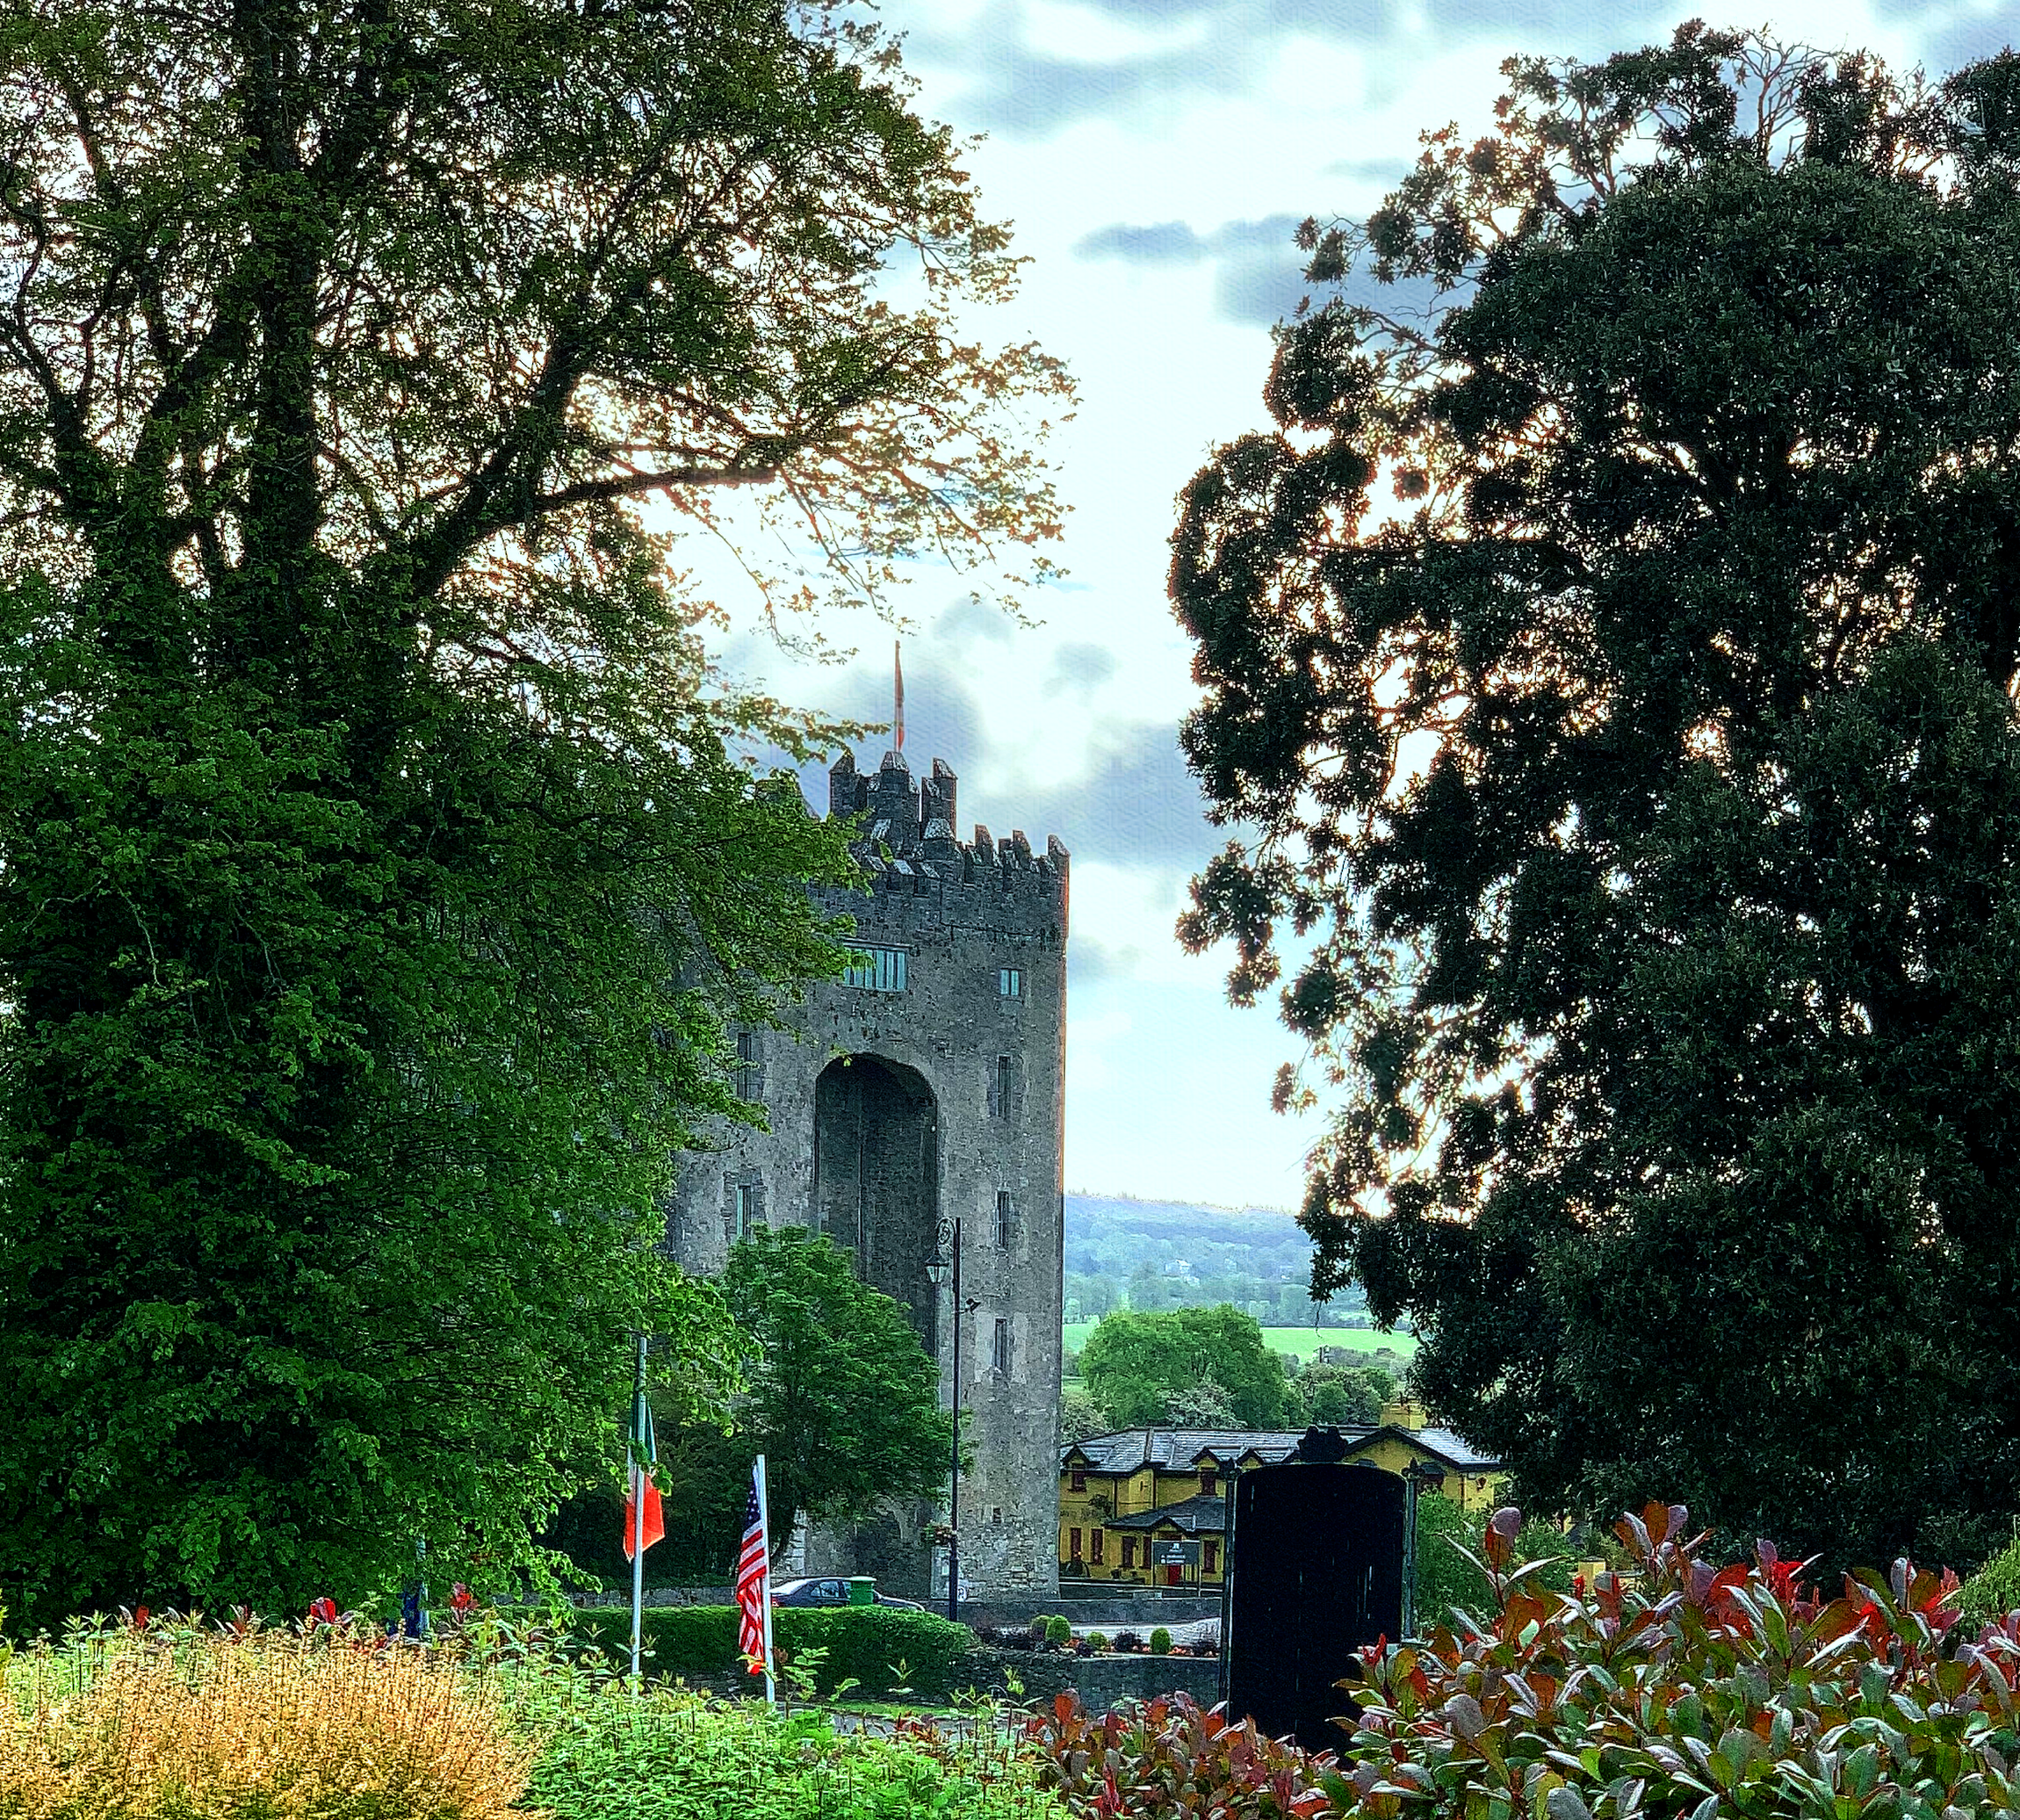 May 19, 2019 - Bunratty Castle, West Bunratty, County Clare, Ireland.